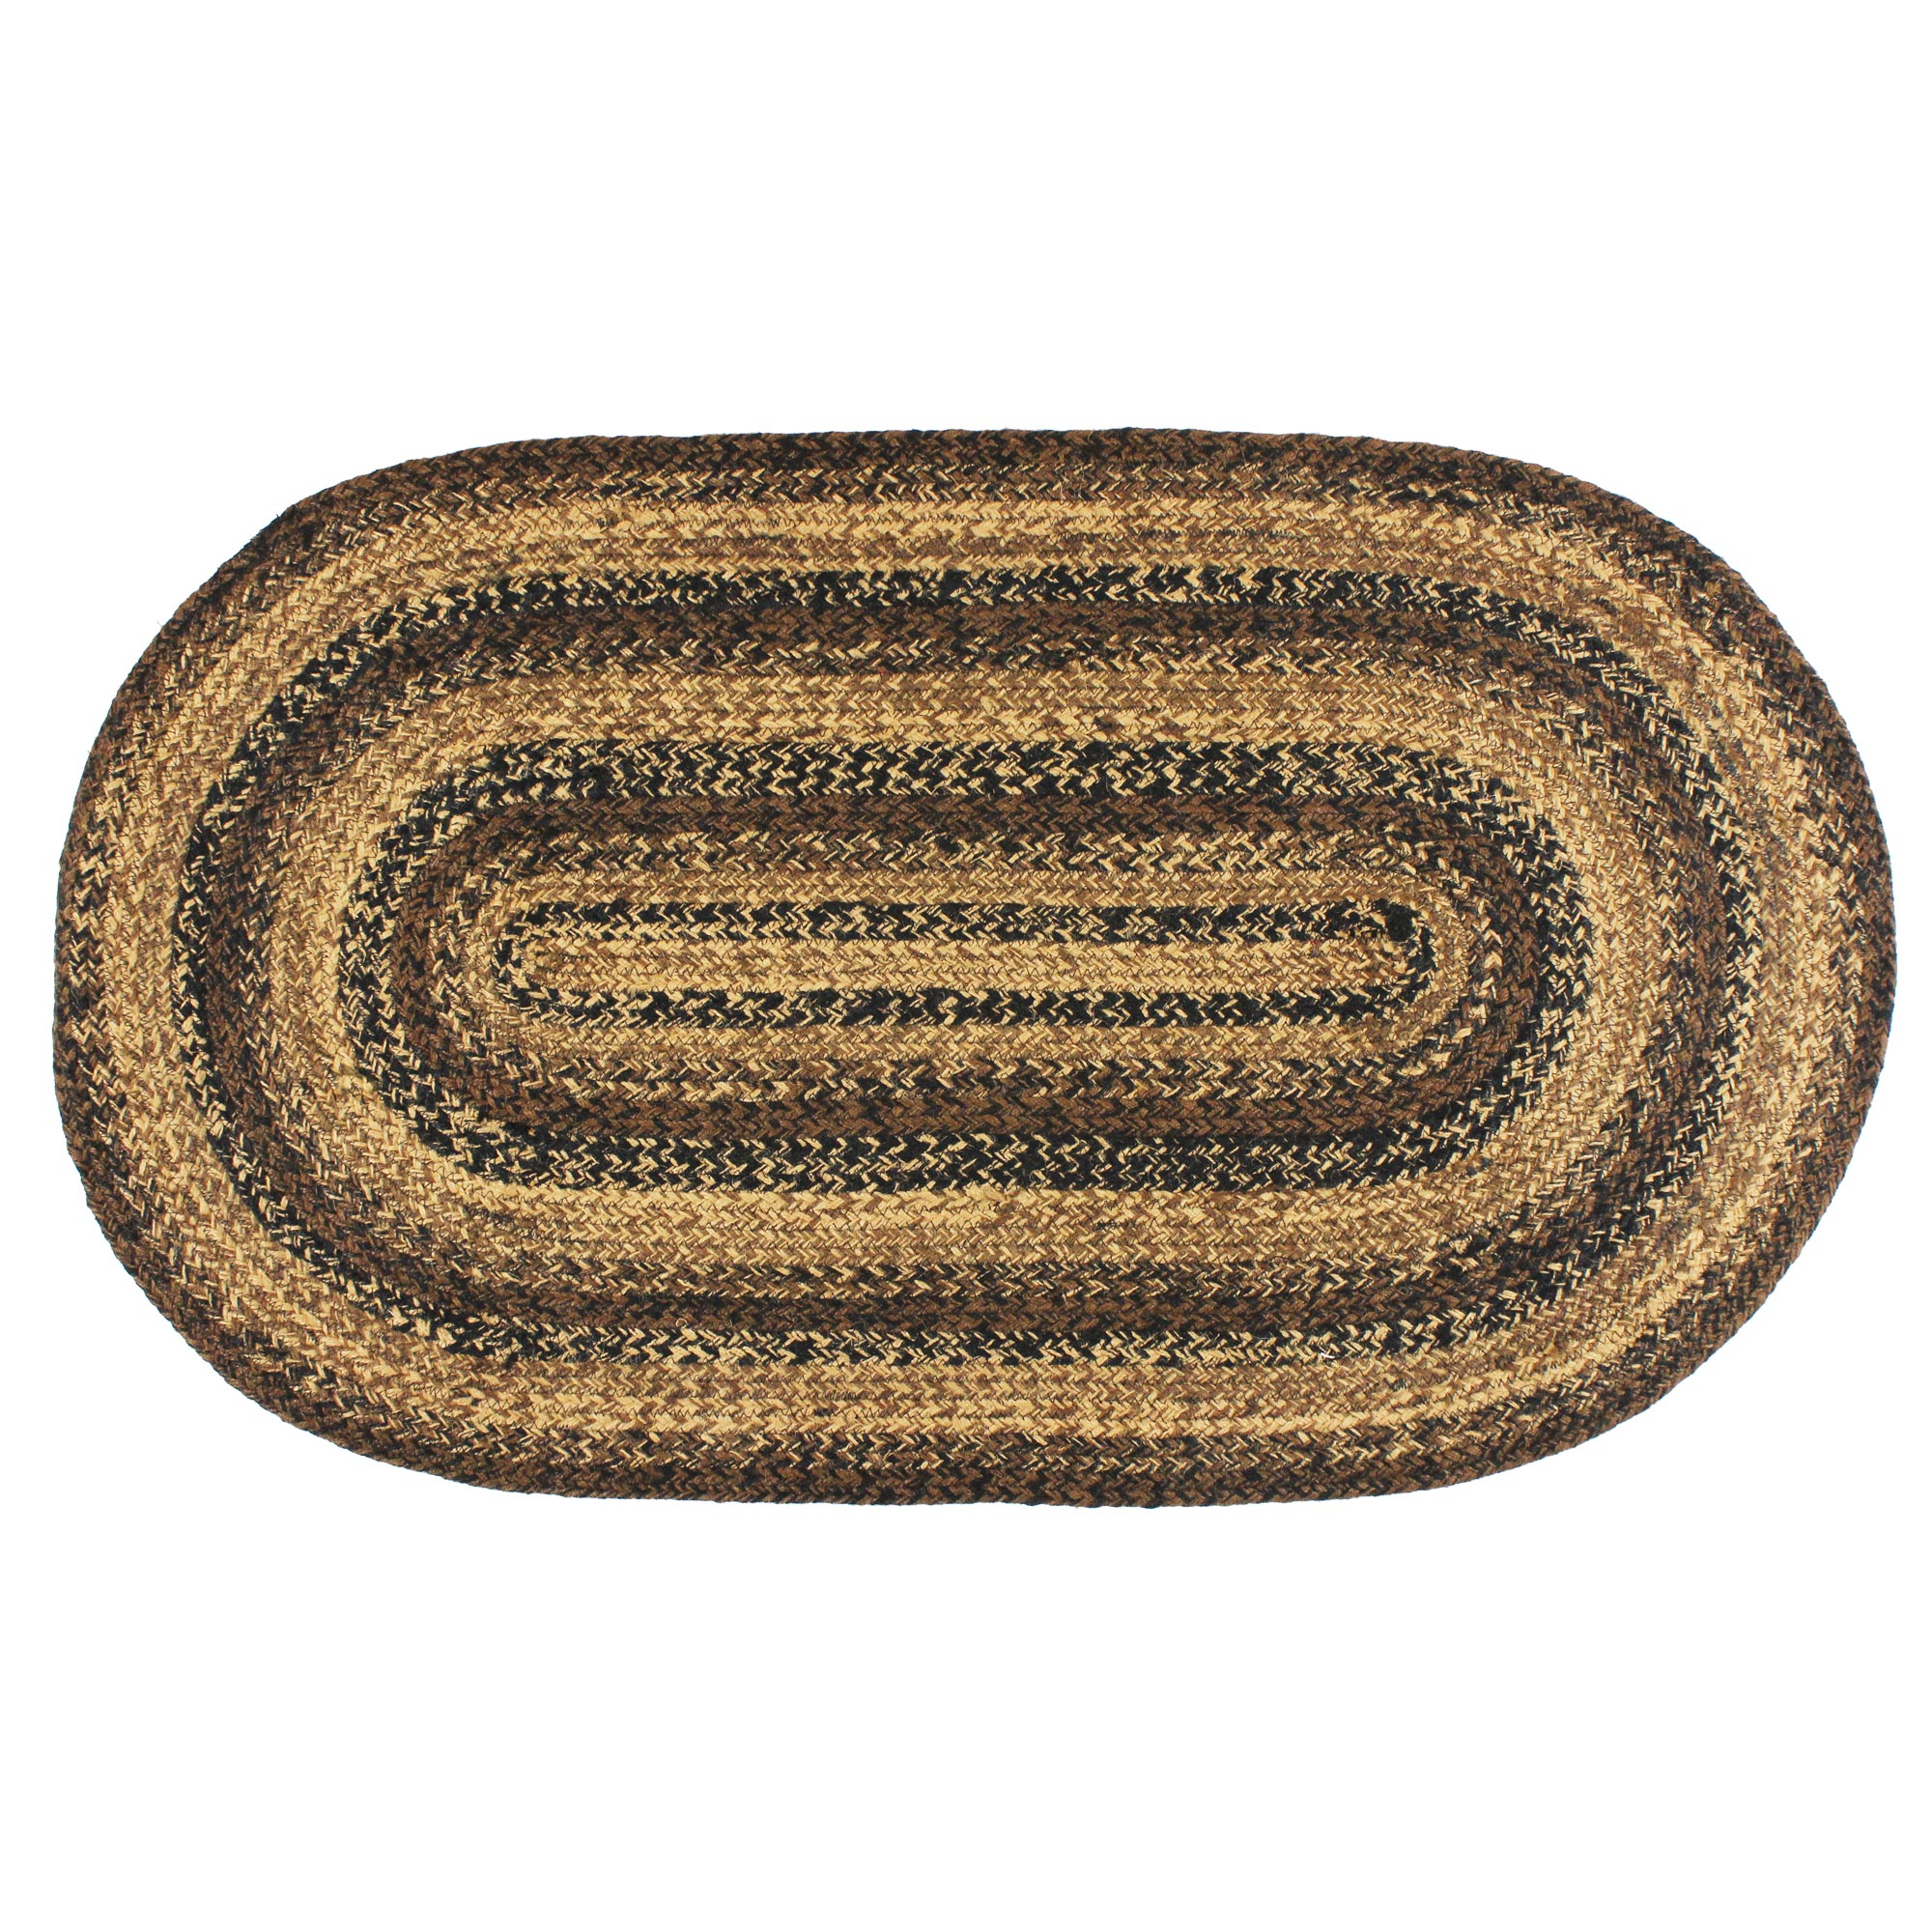 Jute Braided Rug Black Brown and Tan Primitive Country Cappuccino by IHF Limited